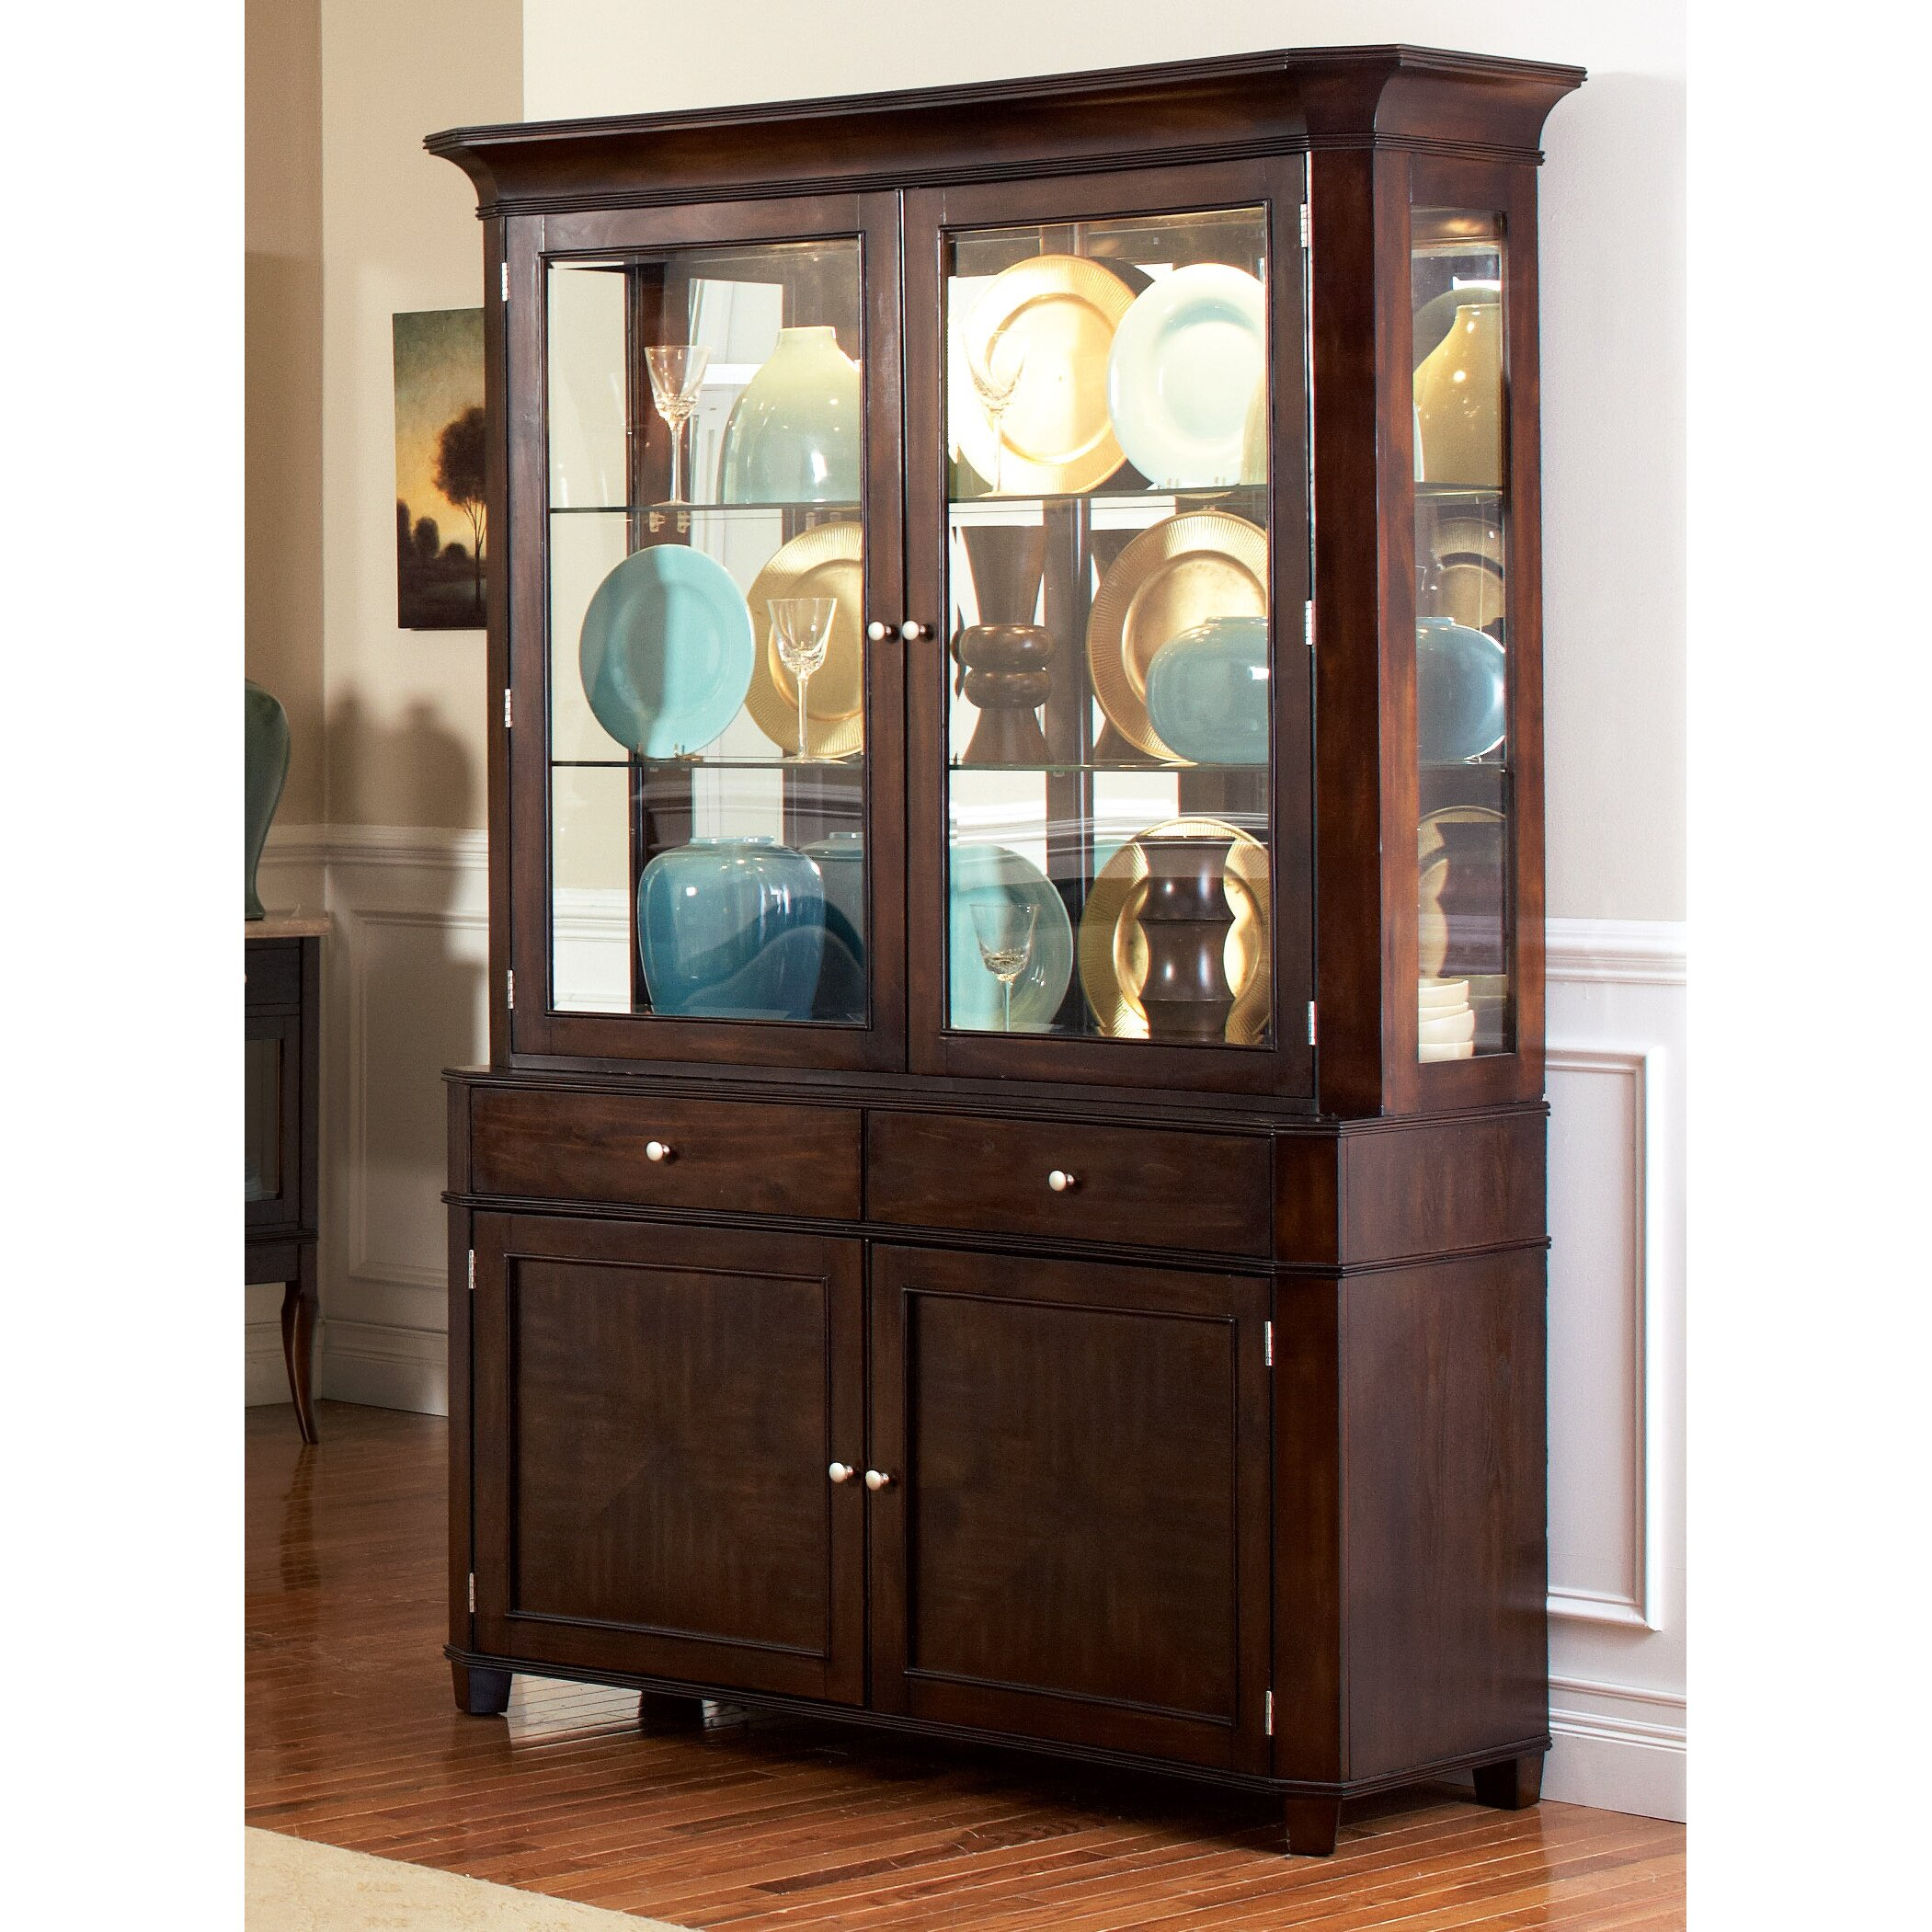 China Cabinet With Hutch Darby Home Co Swenson China Cabinet Hutch Reviews Wayfair